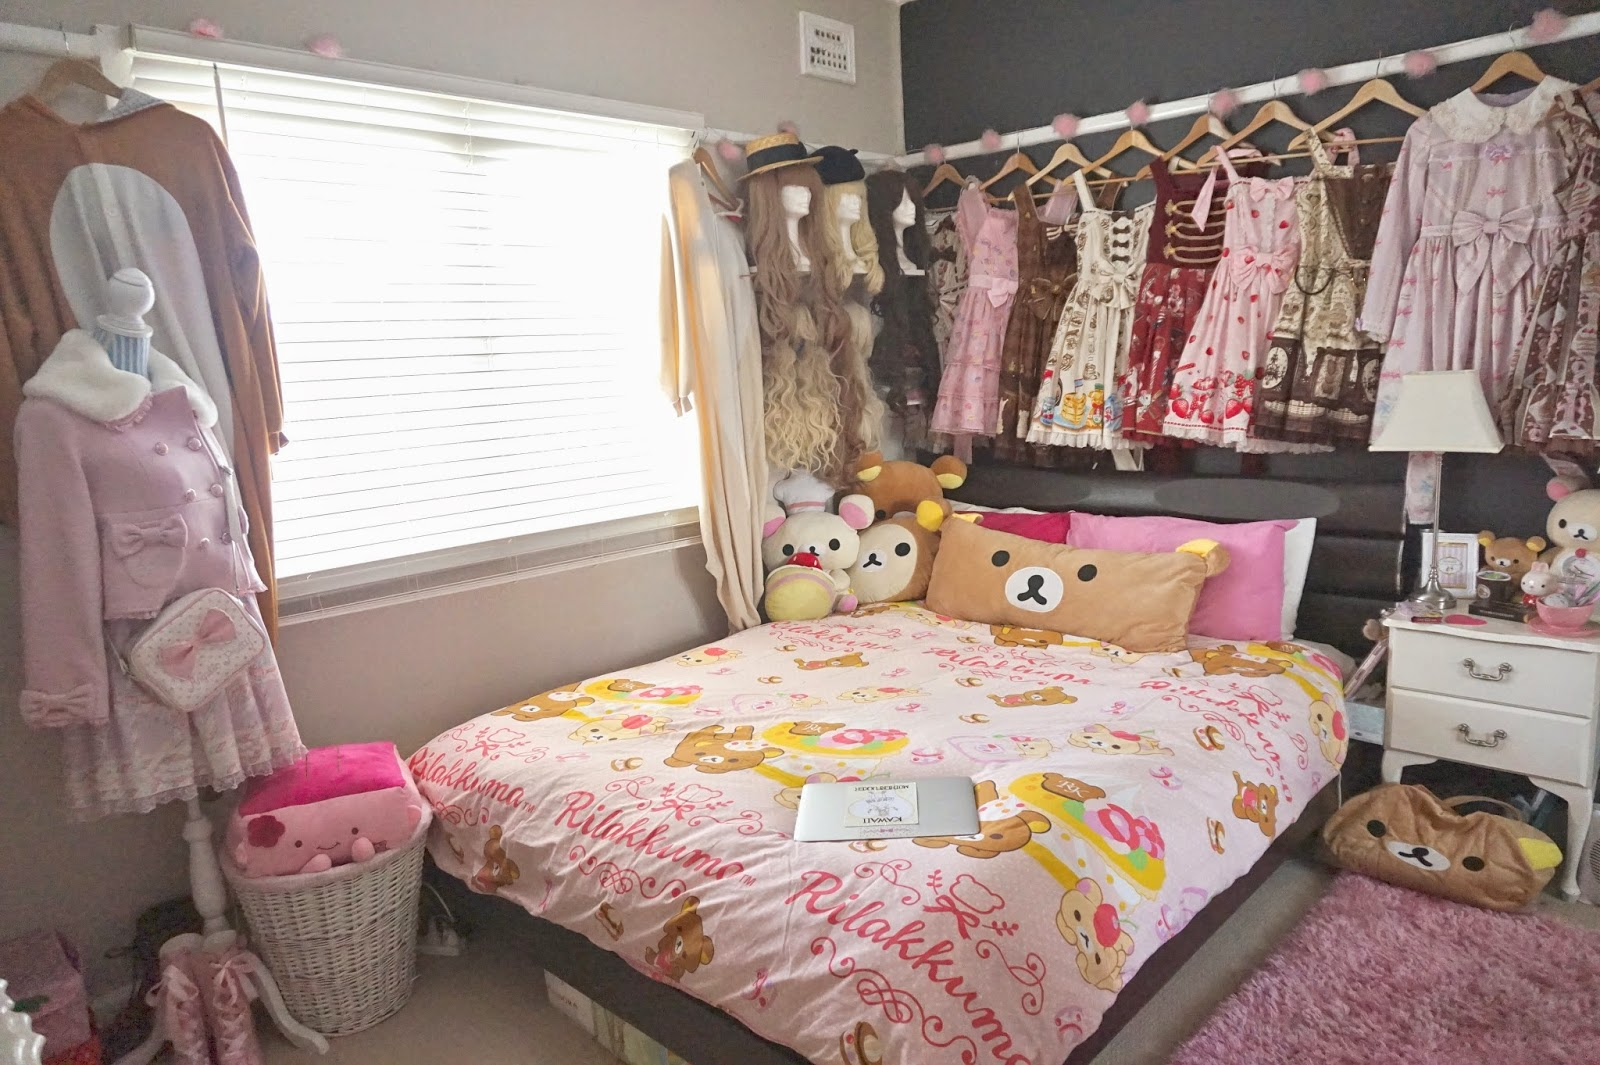 milkyfawn a lolita blog welcome to my bedroom milkyfawn welcome to my bedroom home decor that i love